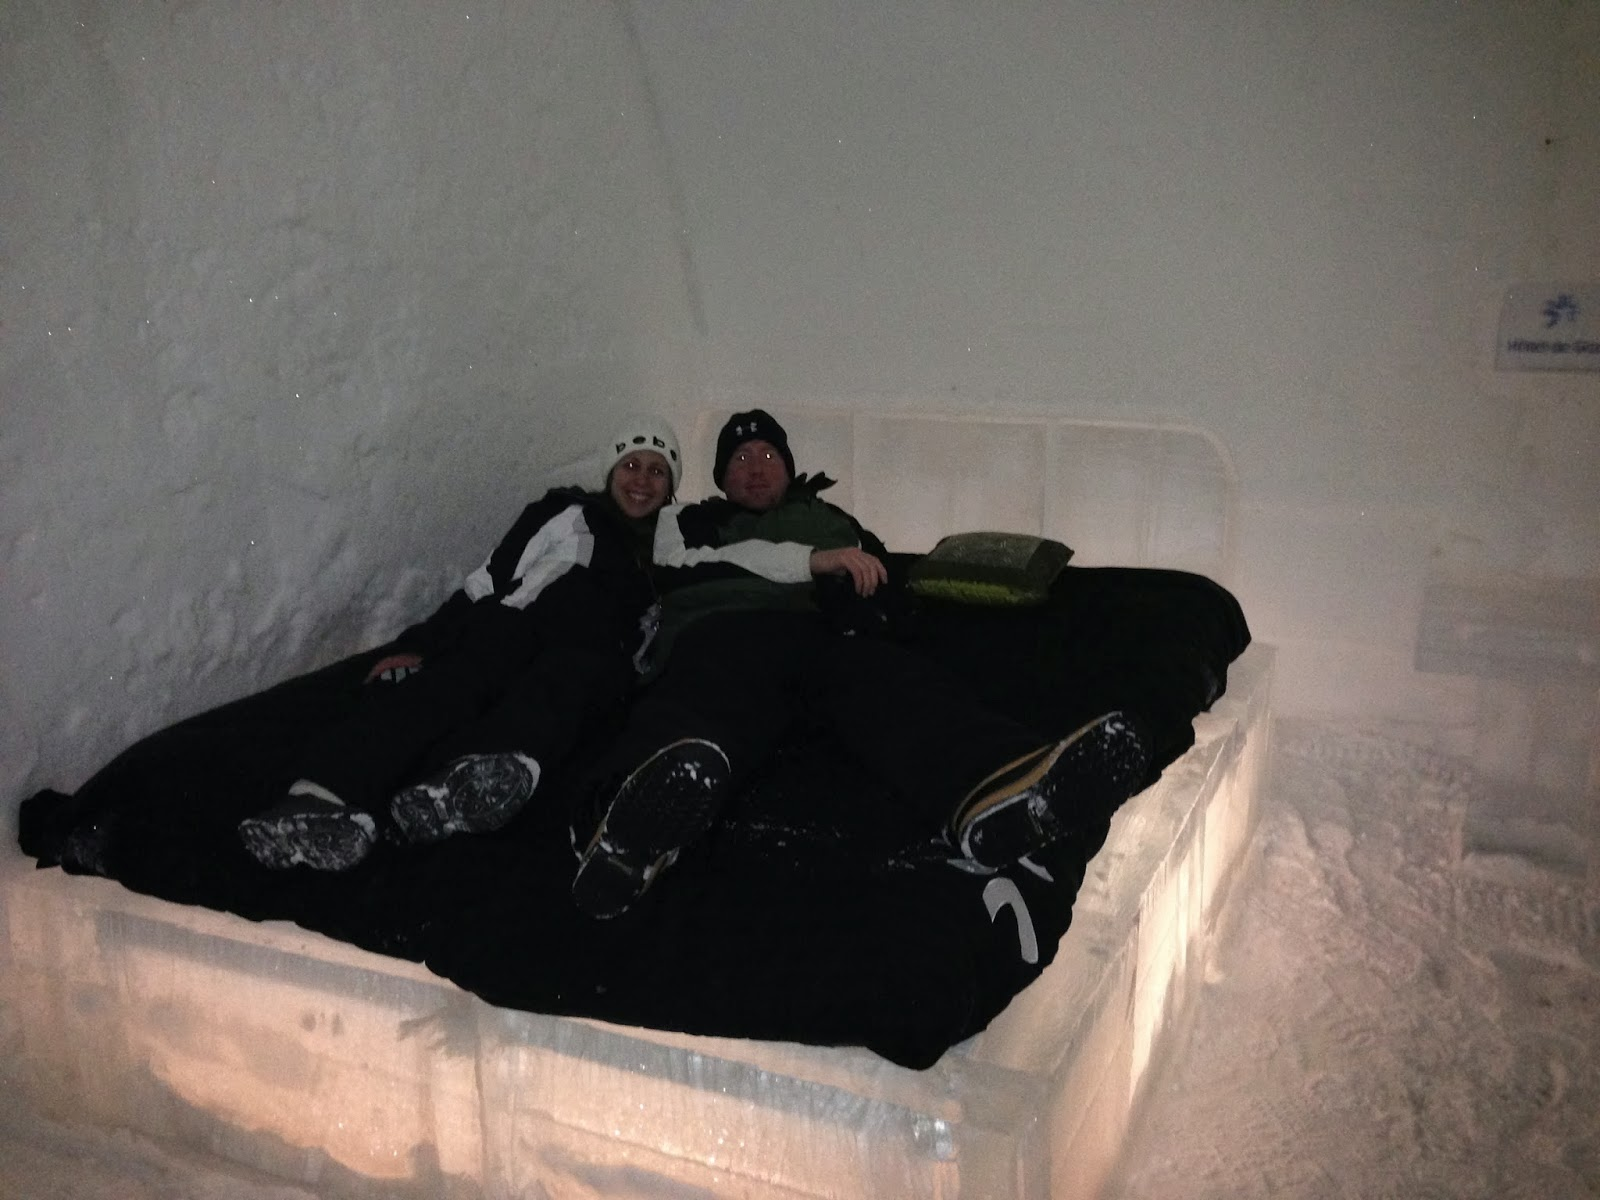 Hotel De Glace ice bed